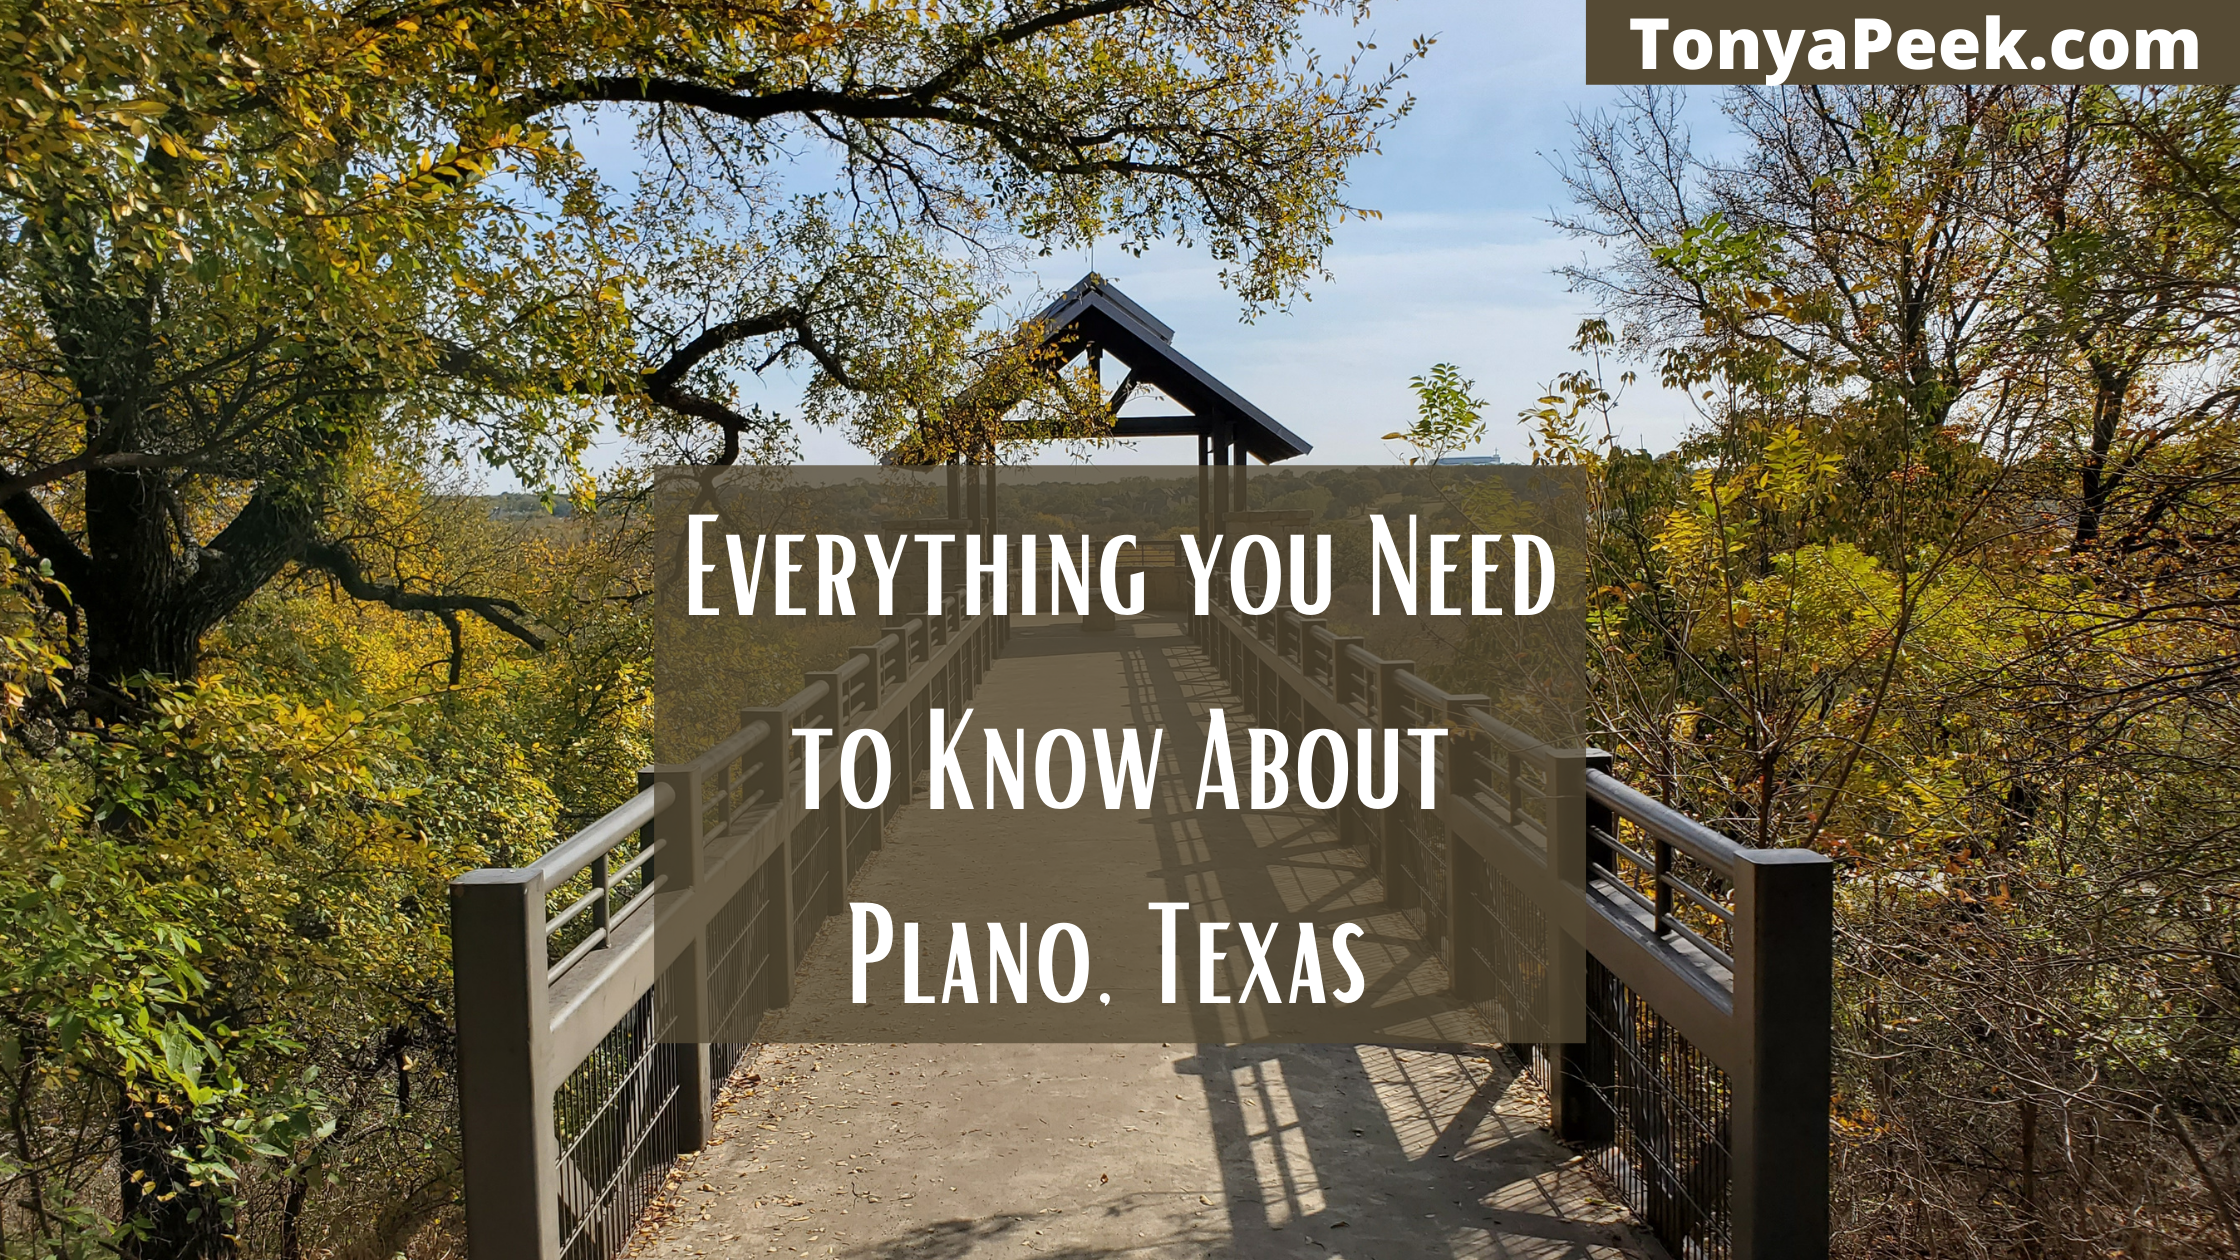 Everything You Need to Know About Moving to Plano